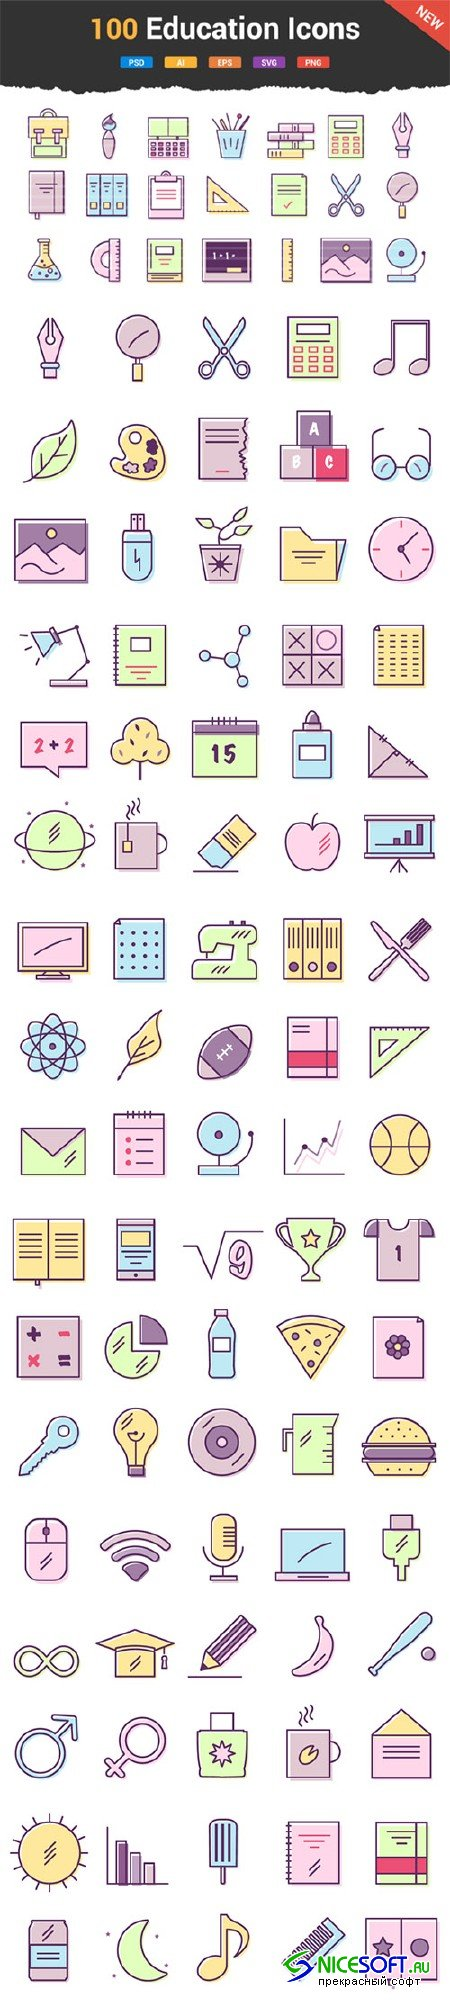 100 Education & School Icons - Creativemarket 604126